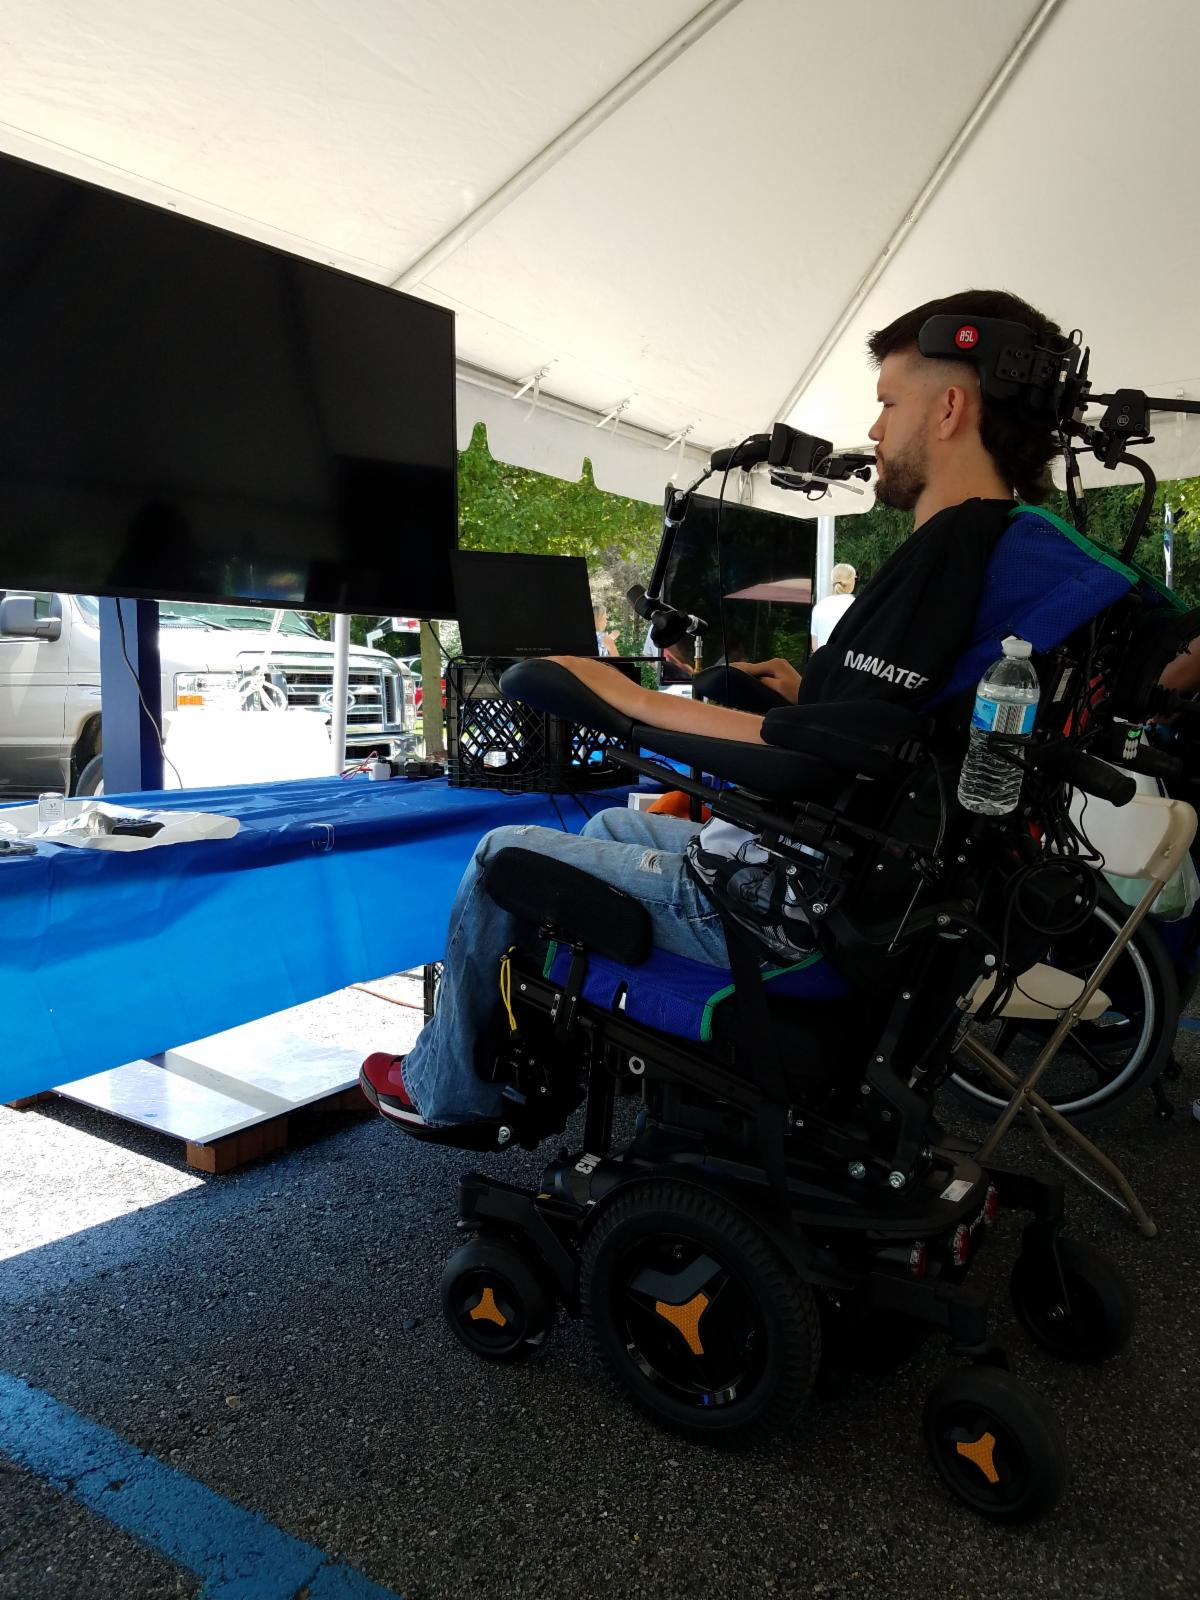 Man with a high level cervical injury uses a sip and puff tool to play video games